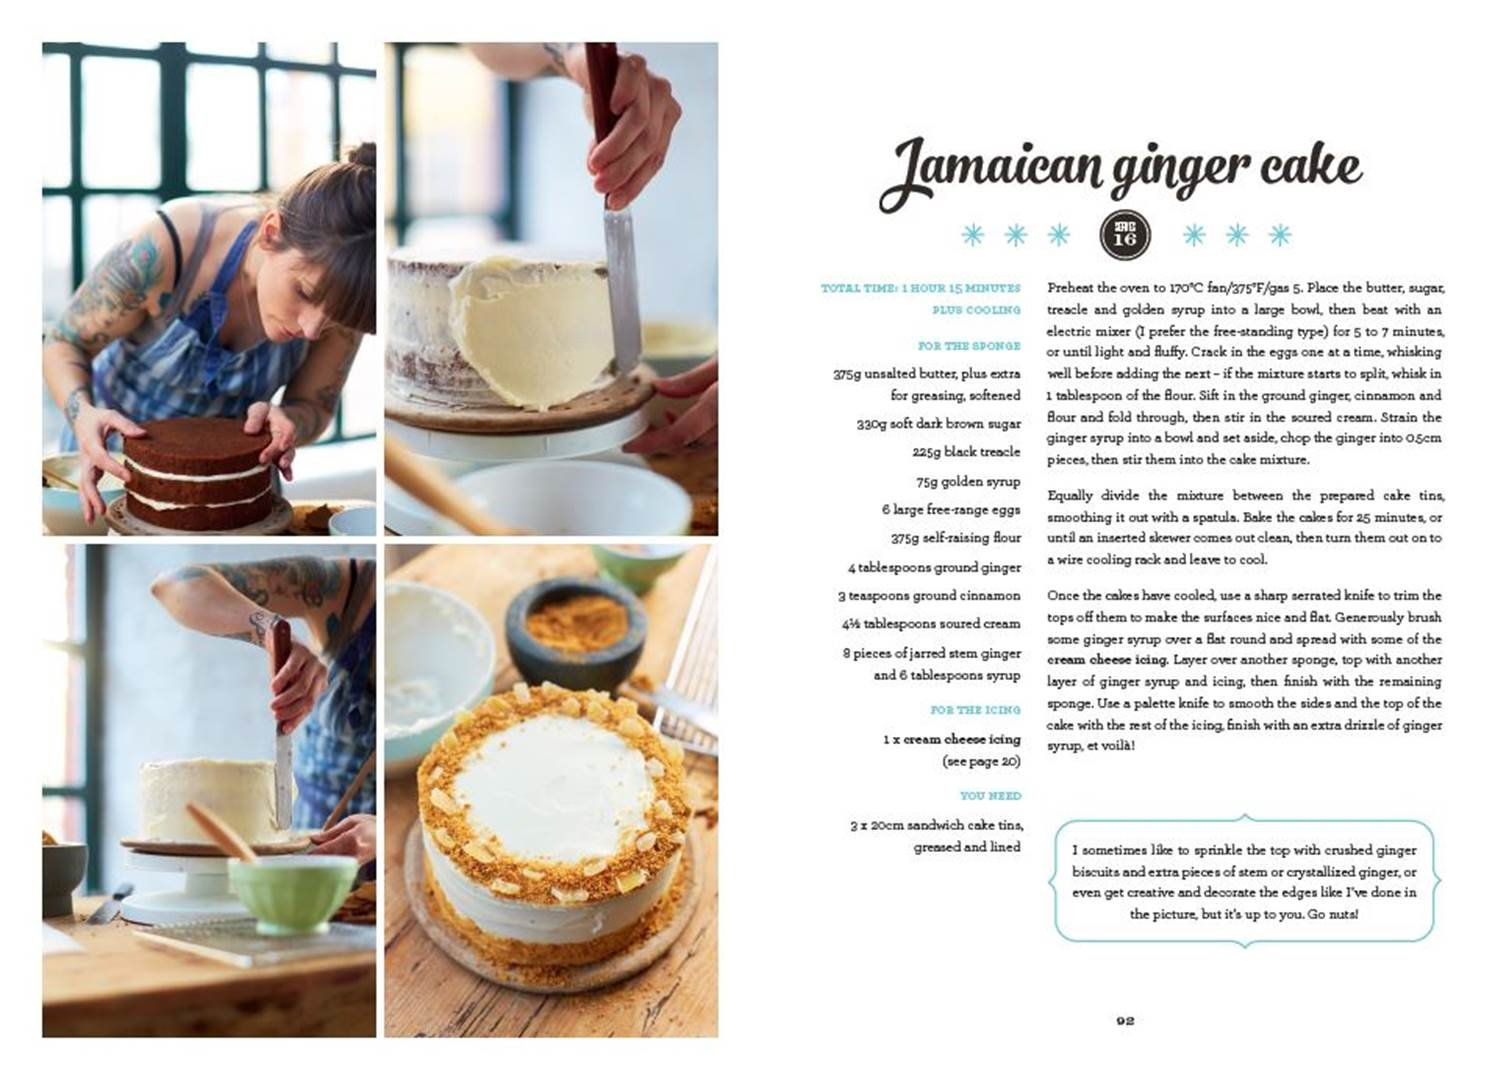 Buy The Cake Book Jamie Olivers Food Tube Online At Low Premium Blueberry Cheese 20cm Prices In India Reviews Ratings